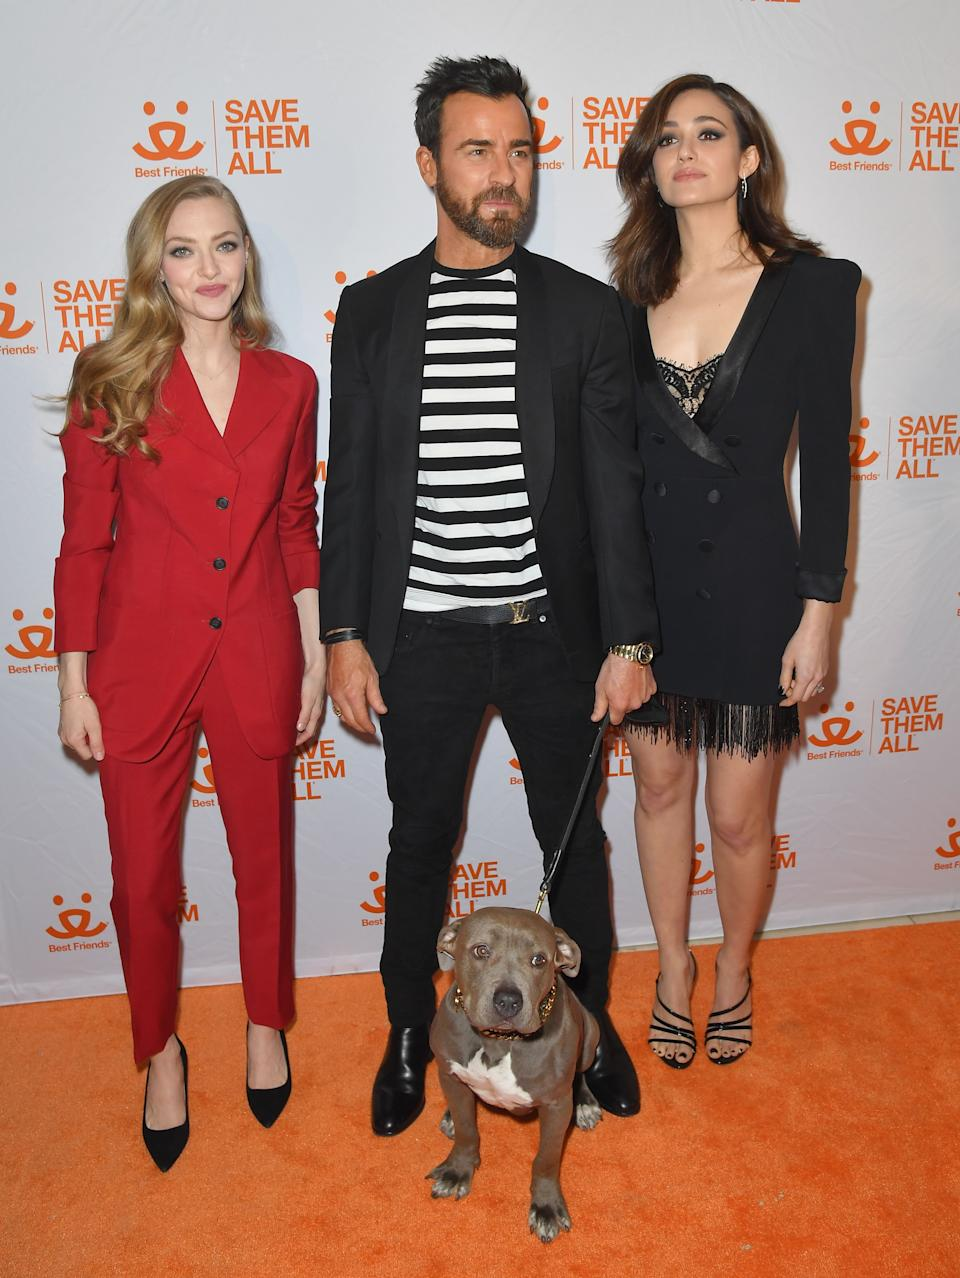 US actors Amanda Seyfried (L), Justin Theroux and his dog Kuma and Emmy Rossum (R) attend Best Friends Animal Society Hosts 4th Annual NYC Benefit To Save Them All at Guastavino's on April 2, 2019 in New York City. (Photo by Angela Weiss / AFP)        (Photo credit should read ANGELA WEISS/AFP via Getty Images)